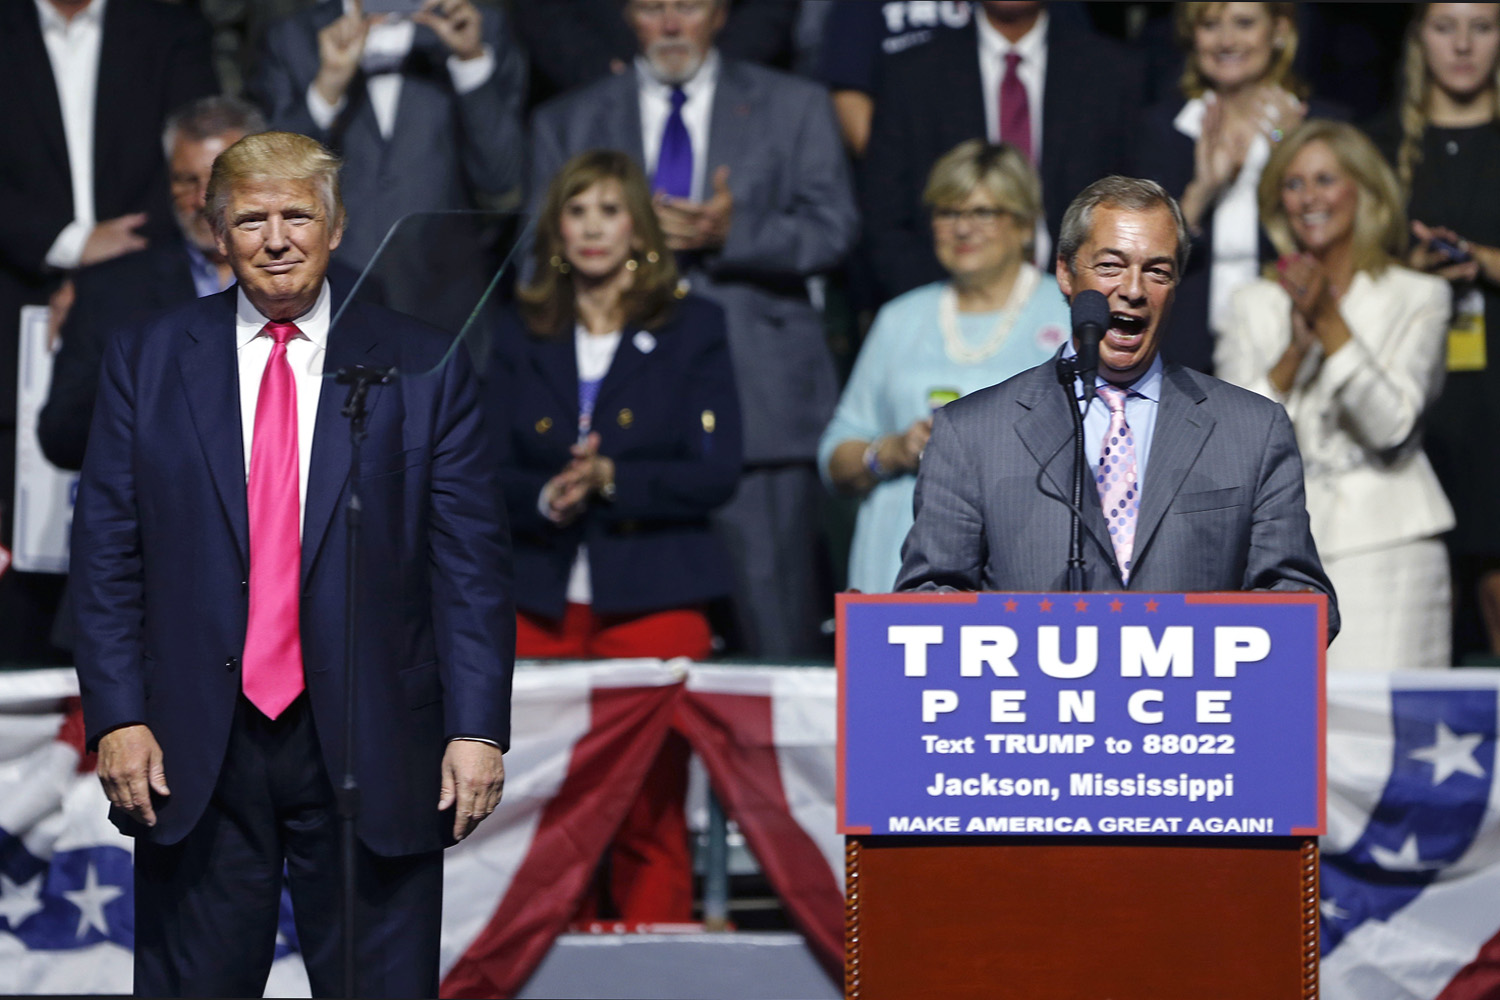 Nigel Farage, ex-leader of the British UKIP party, speaks as Republican presidential candidate Donald Trump, left, listens, at Trump's campaign rally in Jackson, Miss. (Gerald Herbert/AP)